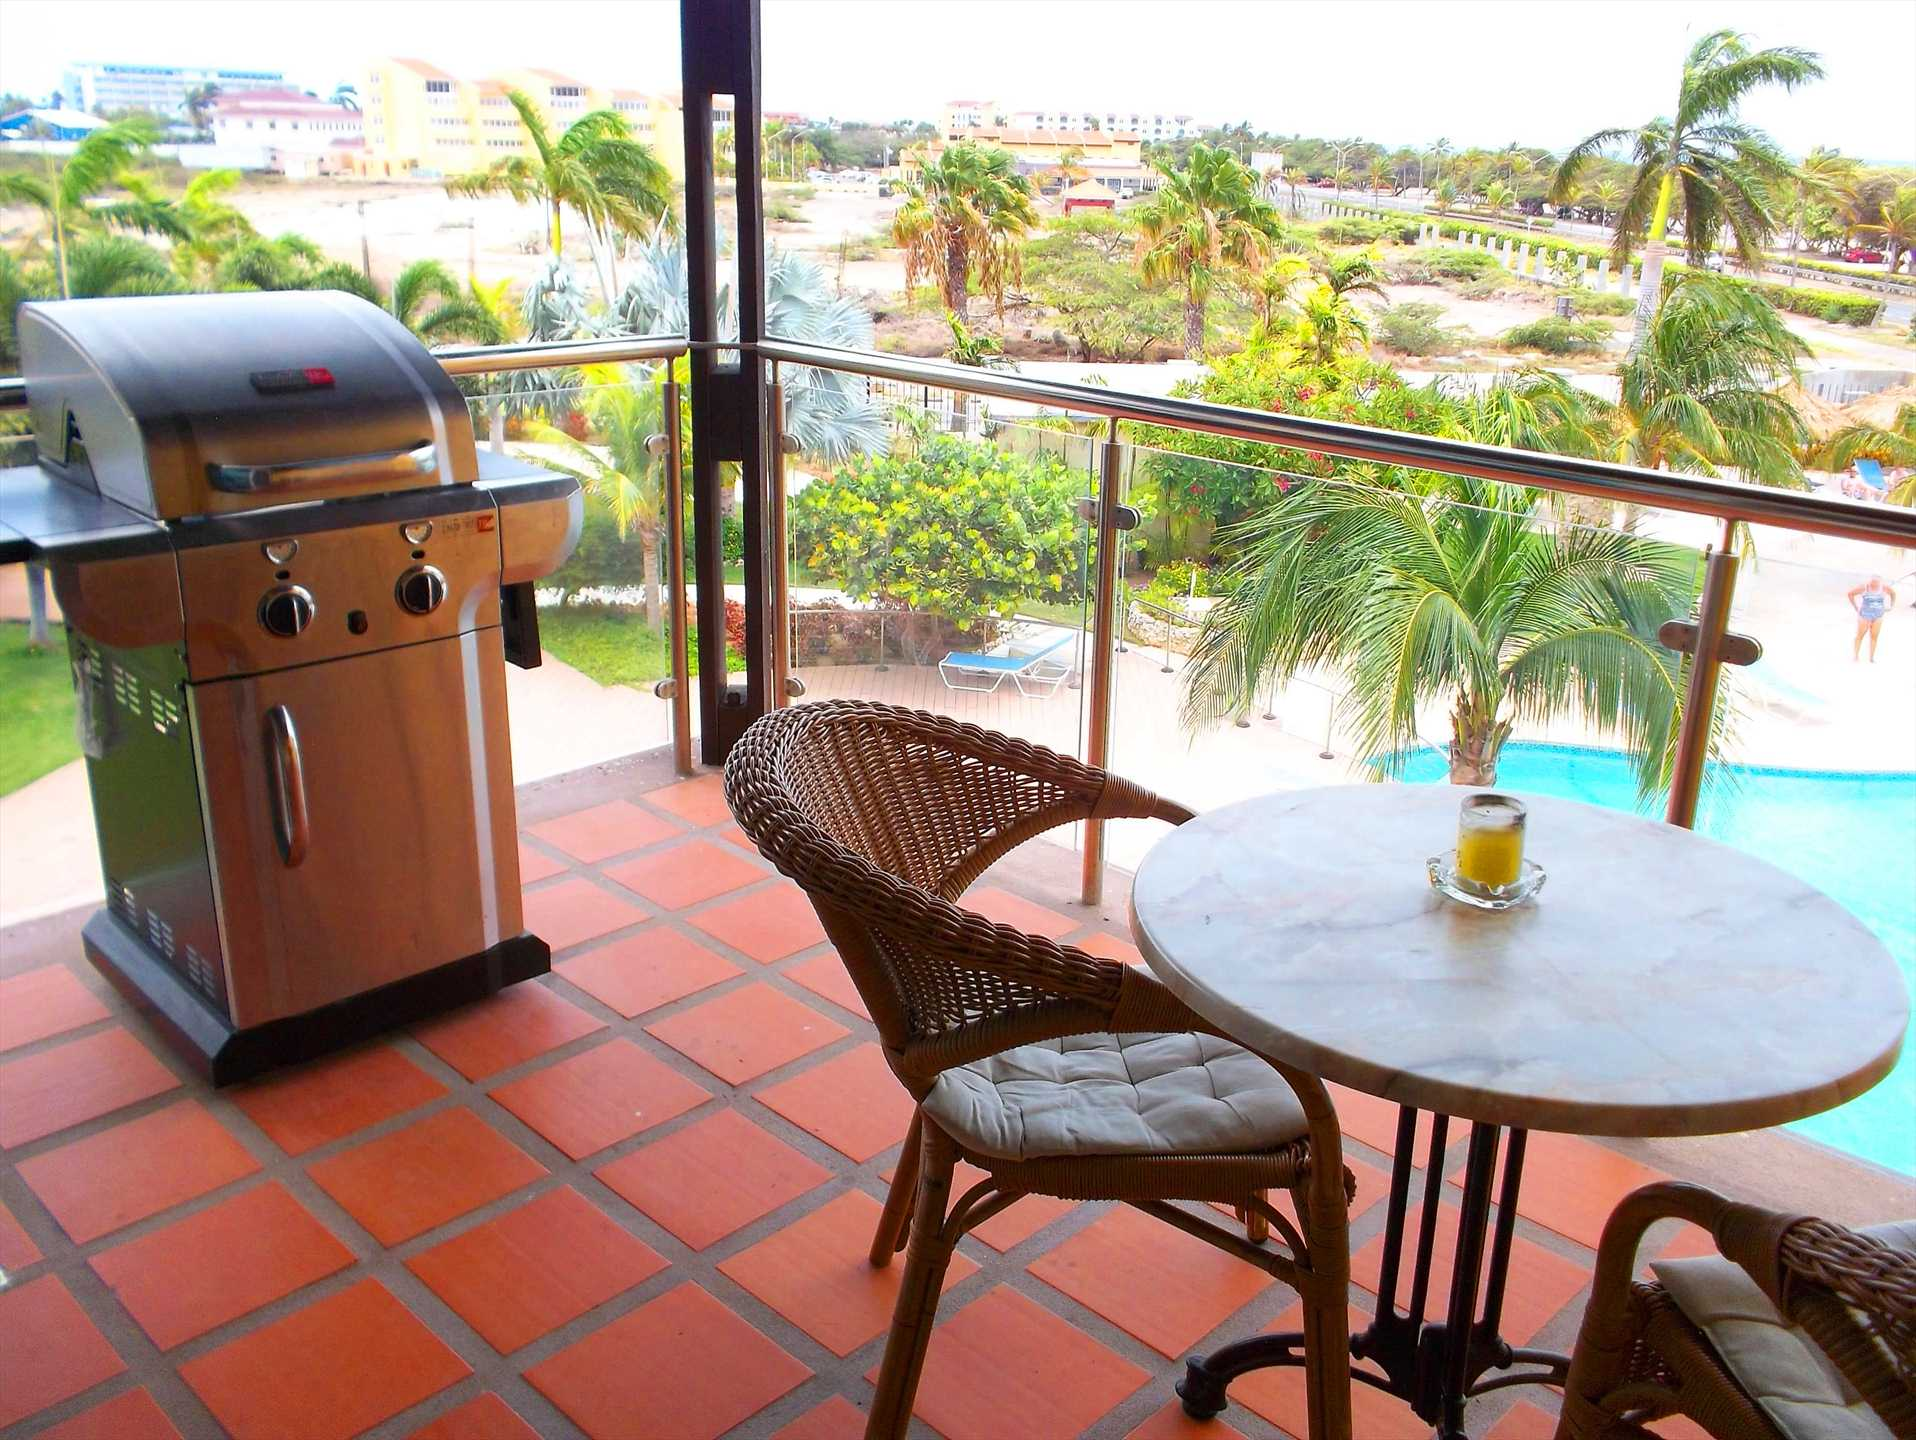 Your own BBQ grill on the balcony.